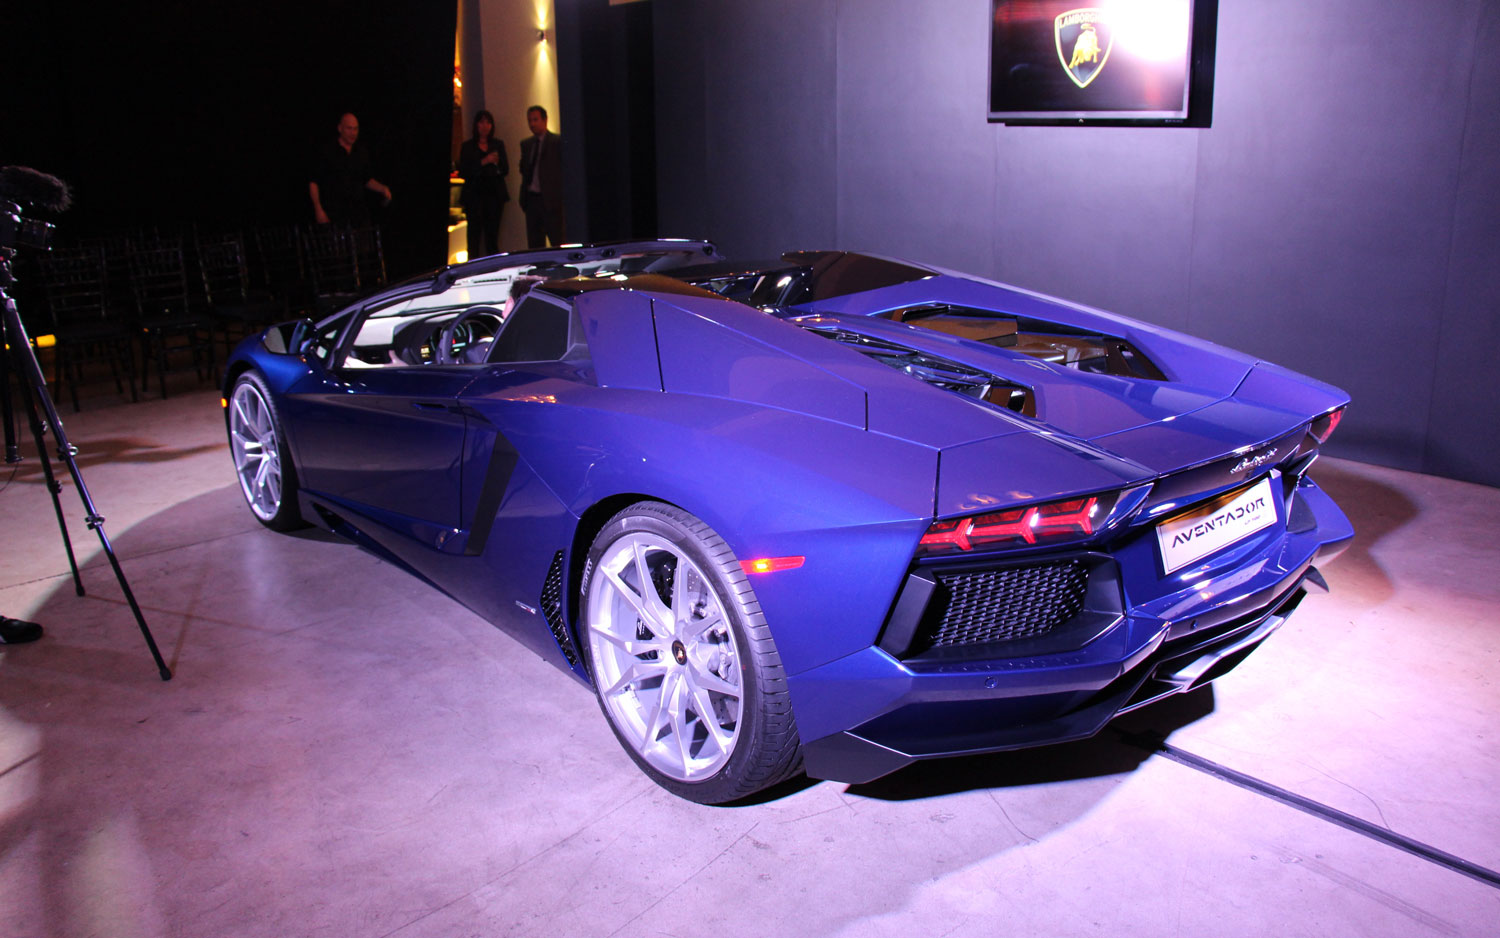 Search Results 2014 Lamborghini Aventador Lp 700 4